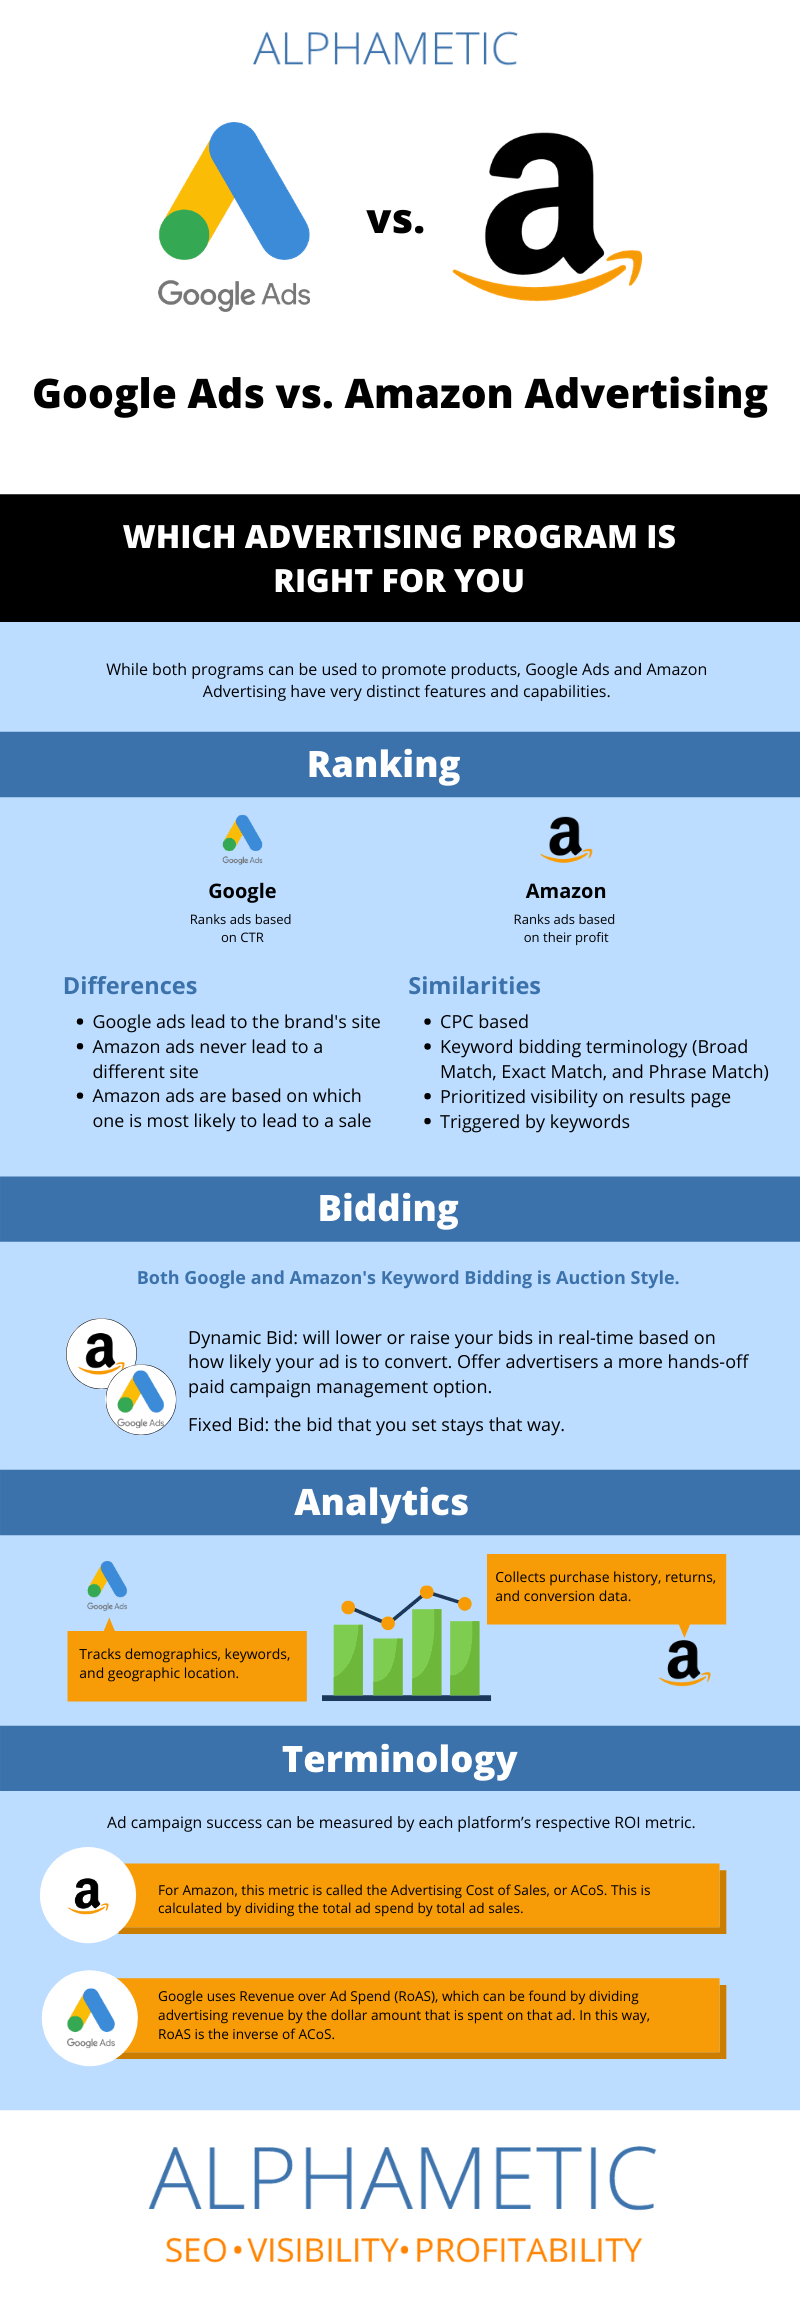 Google Ads vs. Amazon Advertising infographic